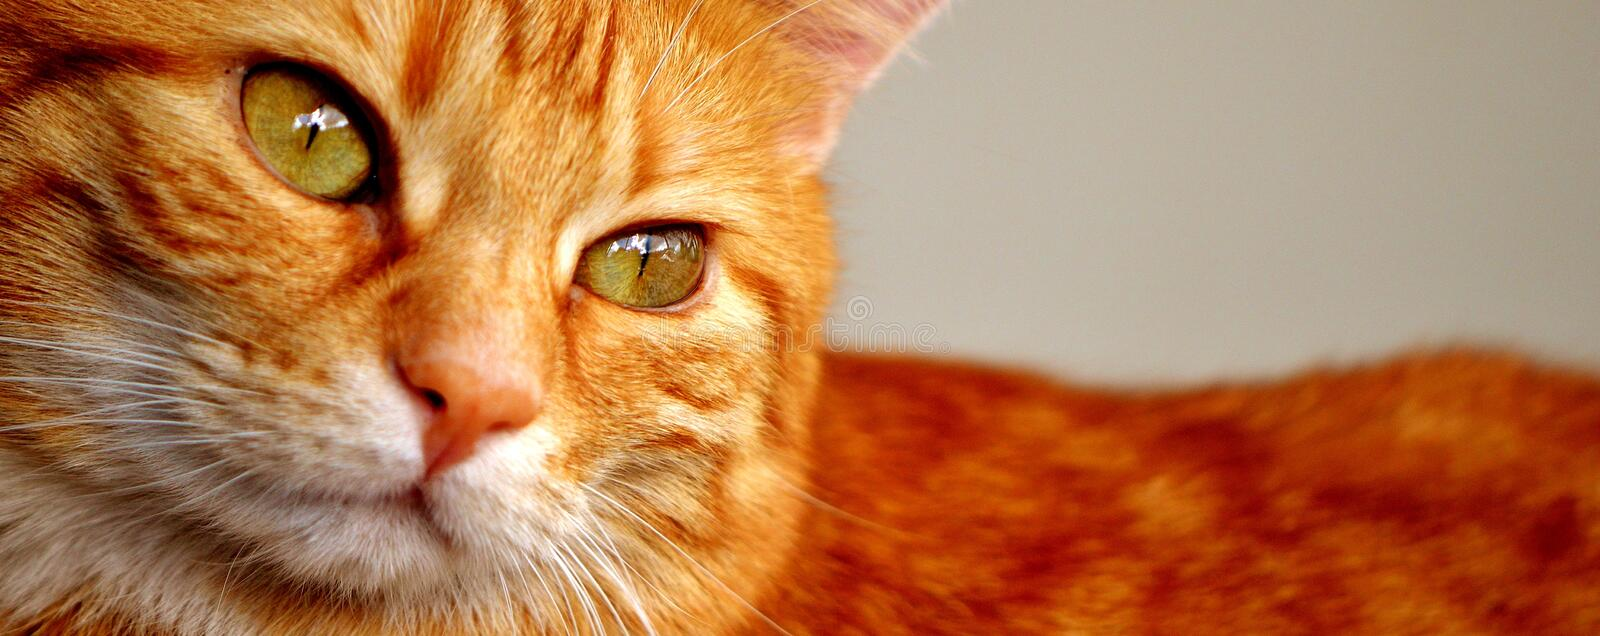 Cat, Whiskers, Face, Tabby Cat royalty free stock images